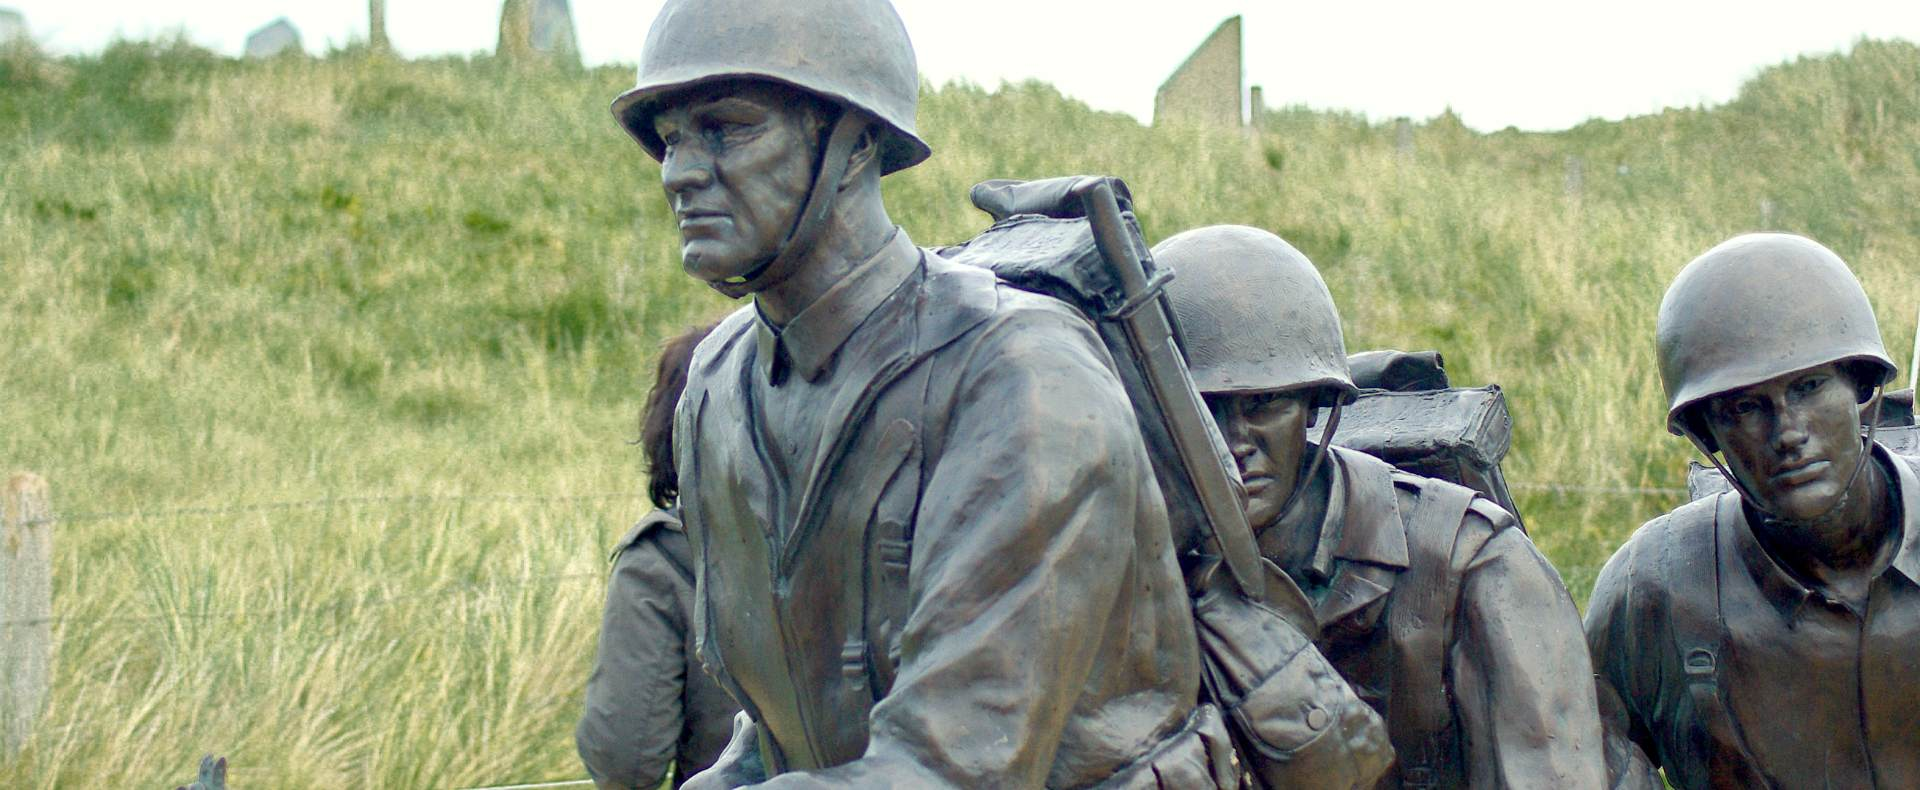 D-Day, Normandy